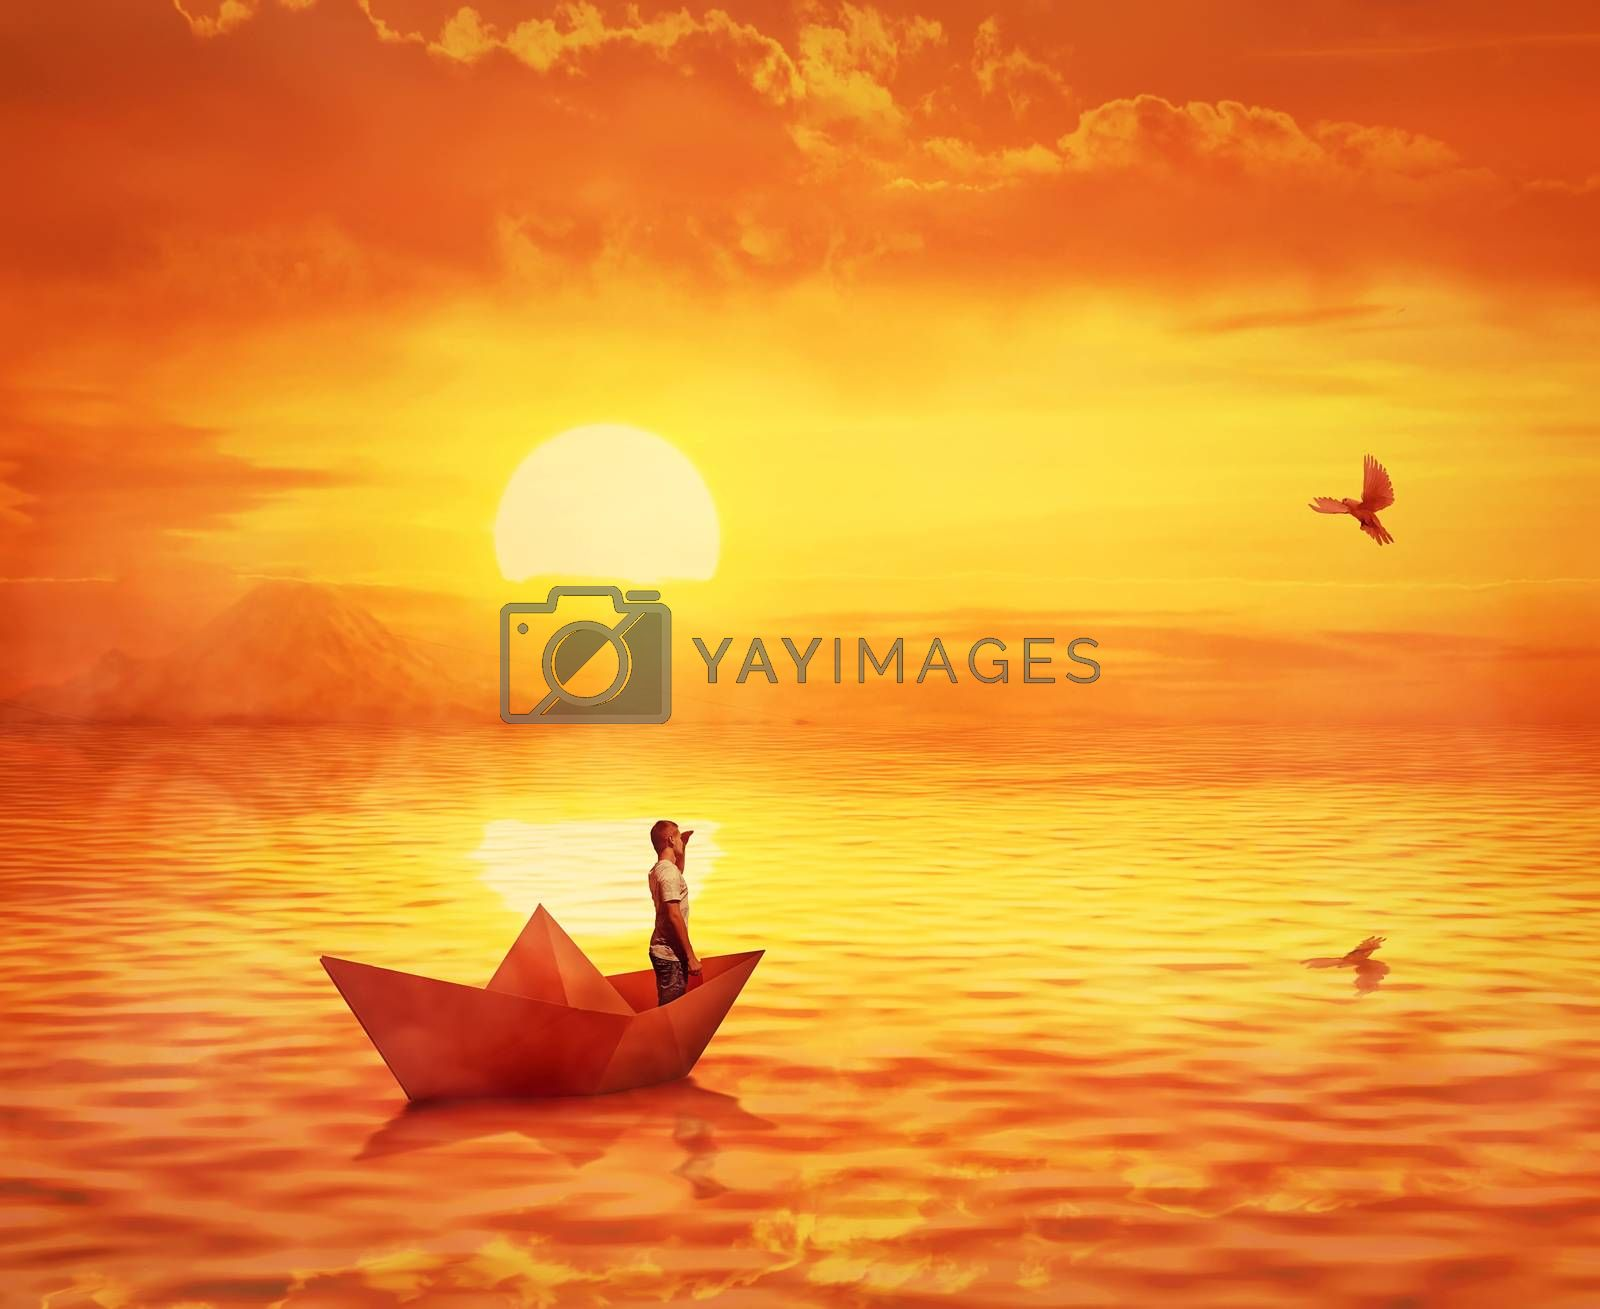 Silhouette of a lonely boy in a paper boat sailing lost in the ocean, against orange sunset sky and a pigeon flying to find the shore. Adventure and journey concept, searching for help.